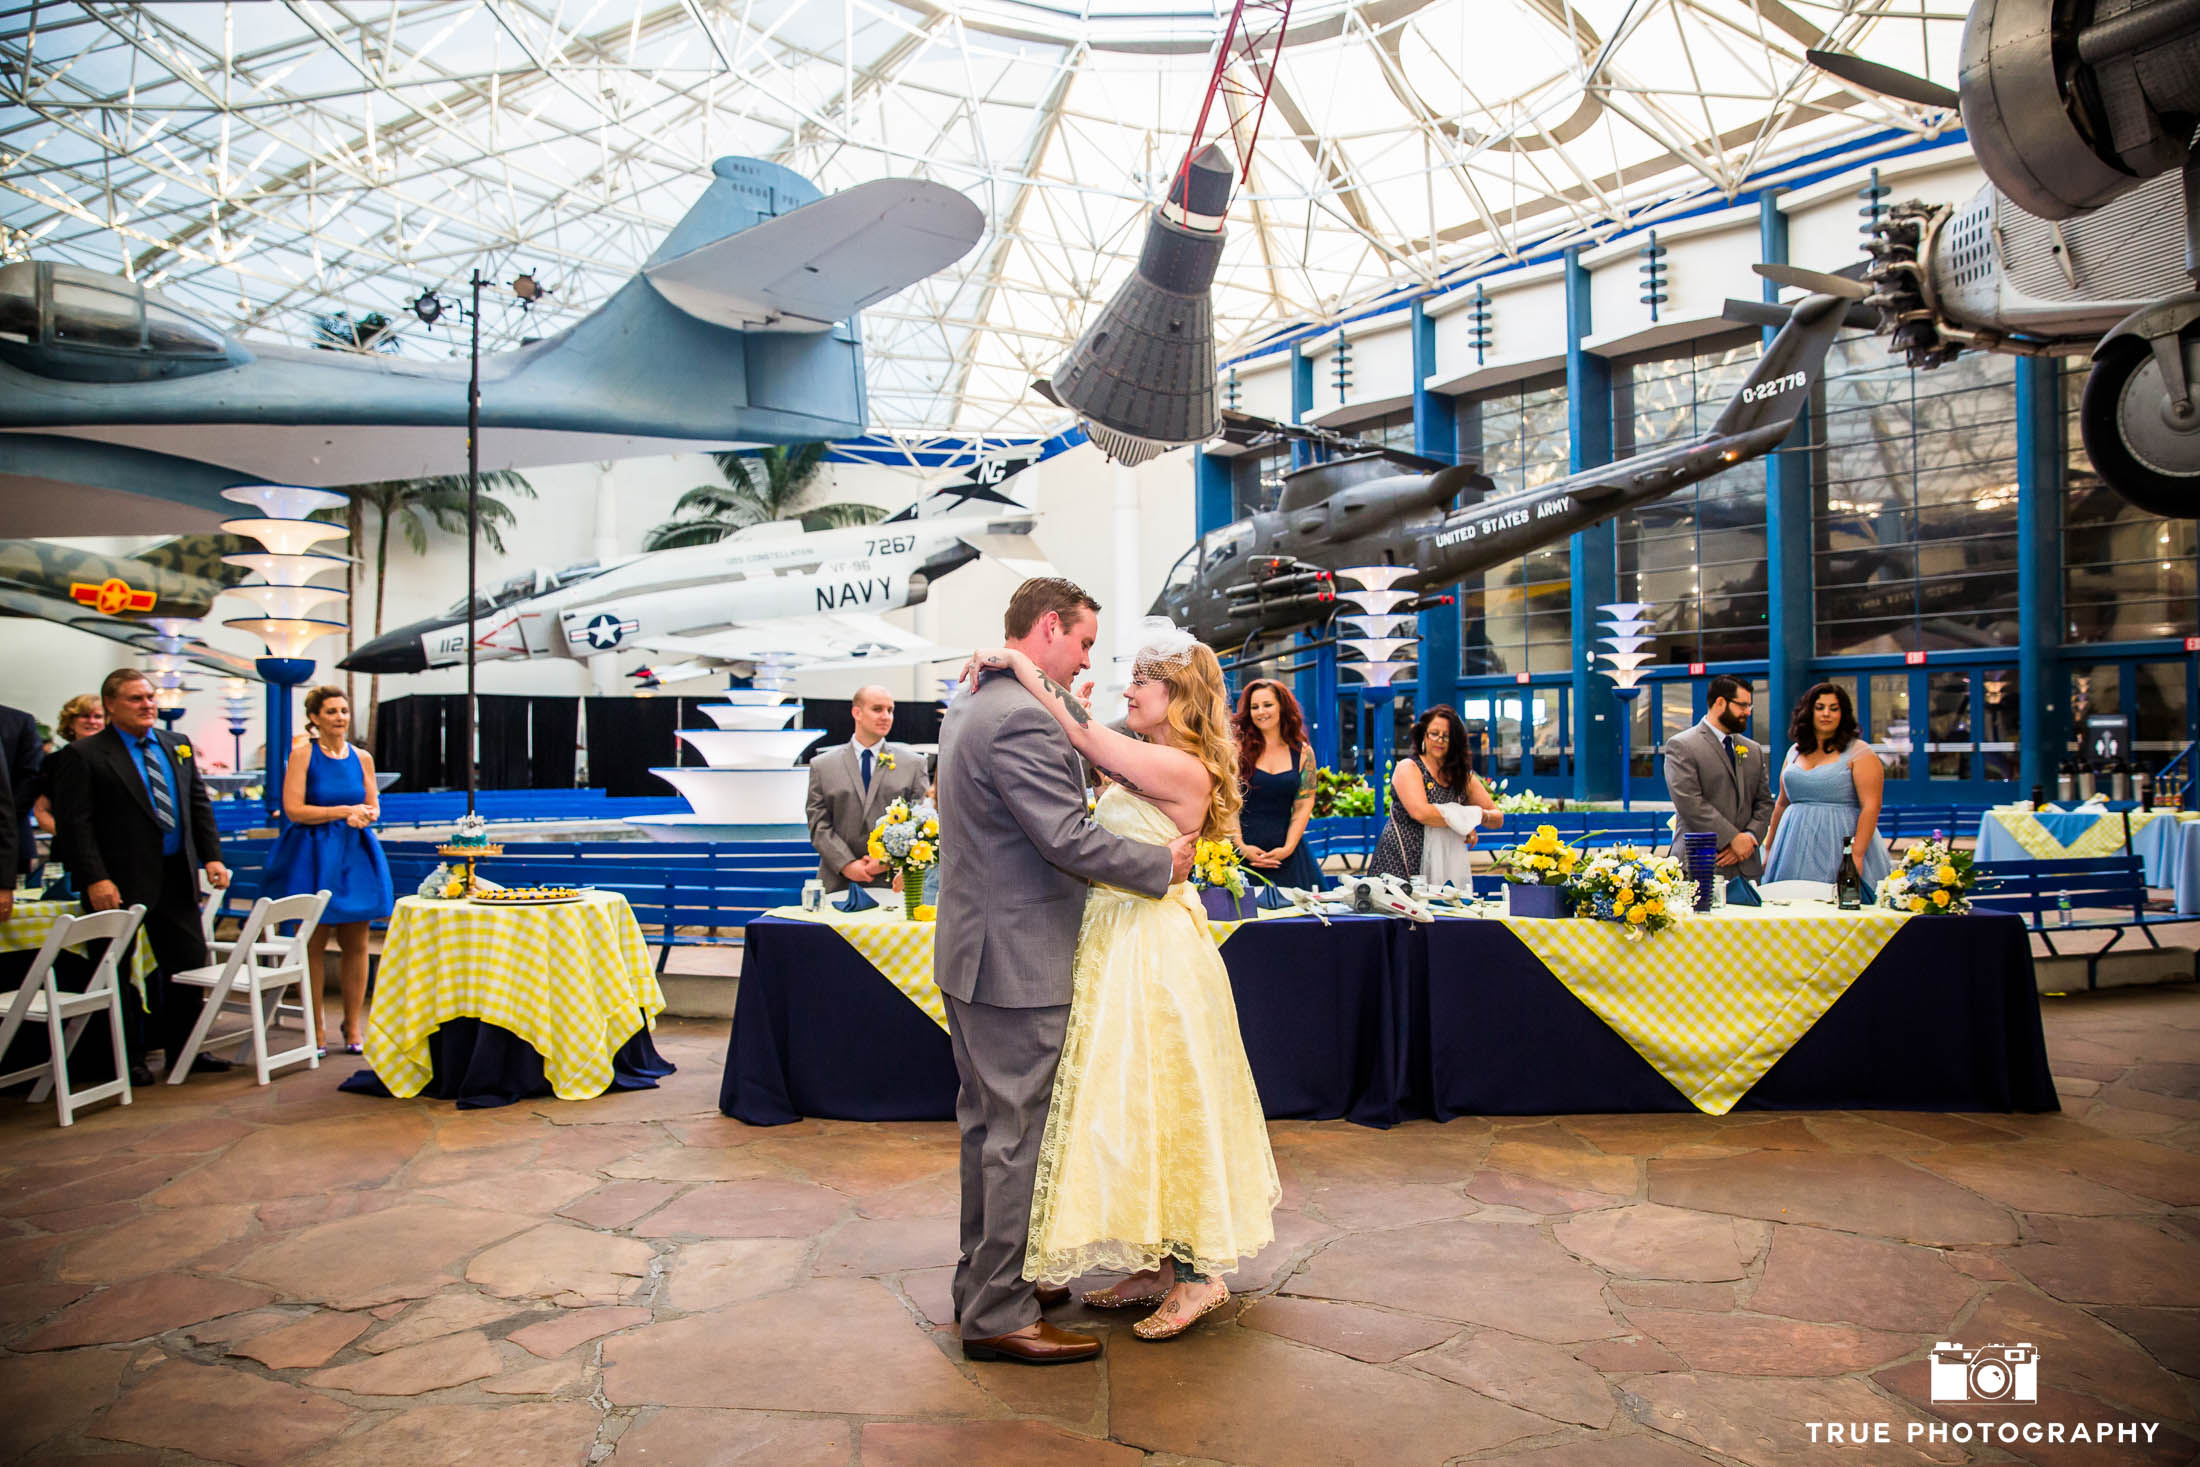 Bride and Groom's first dance as married couple